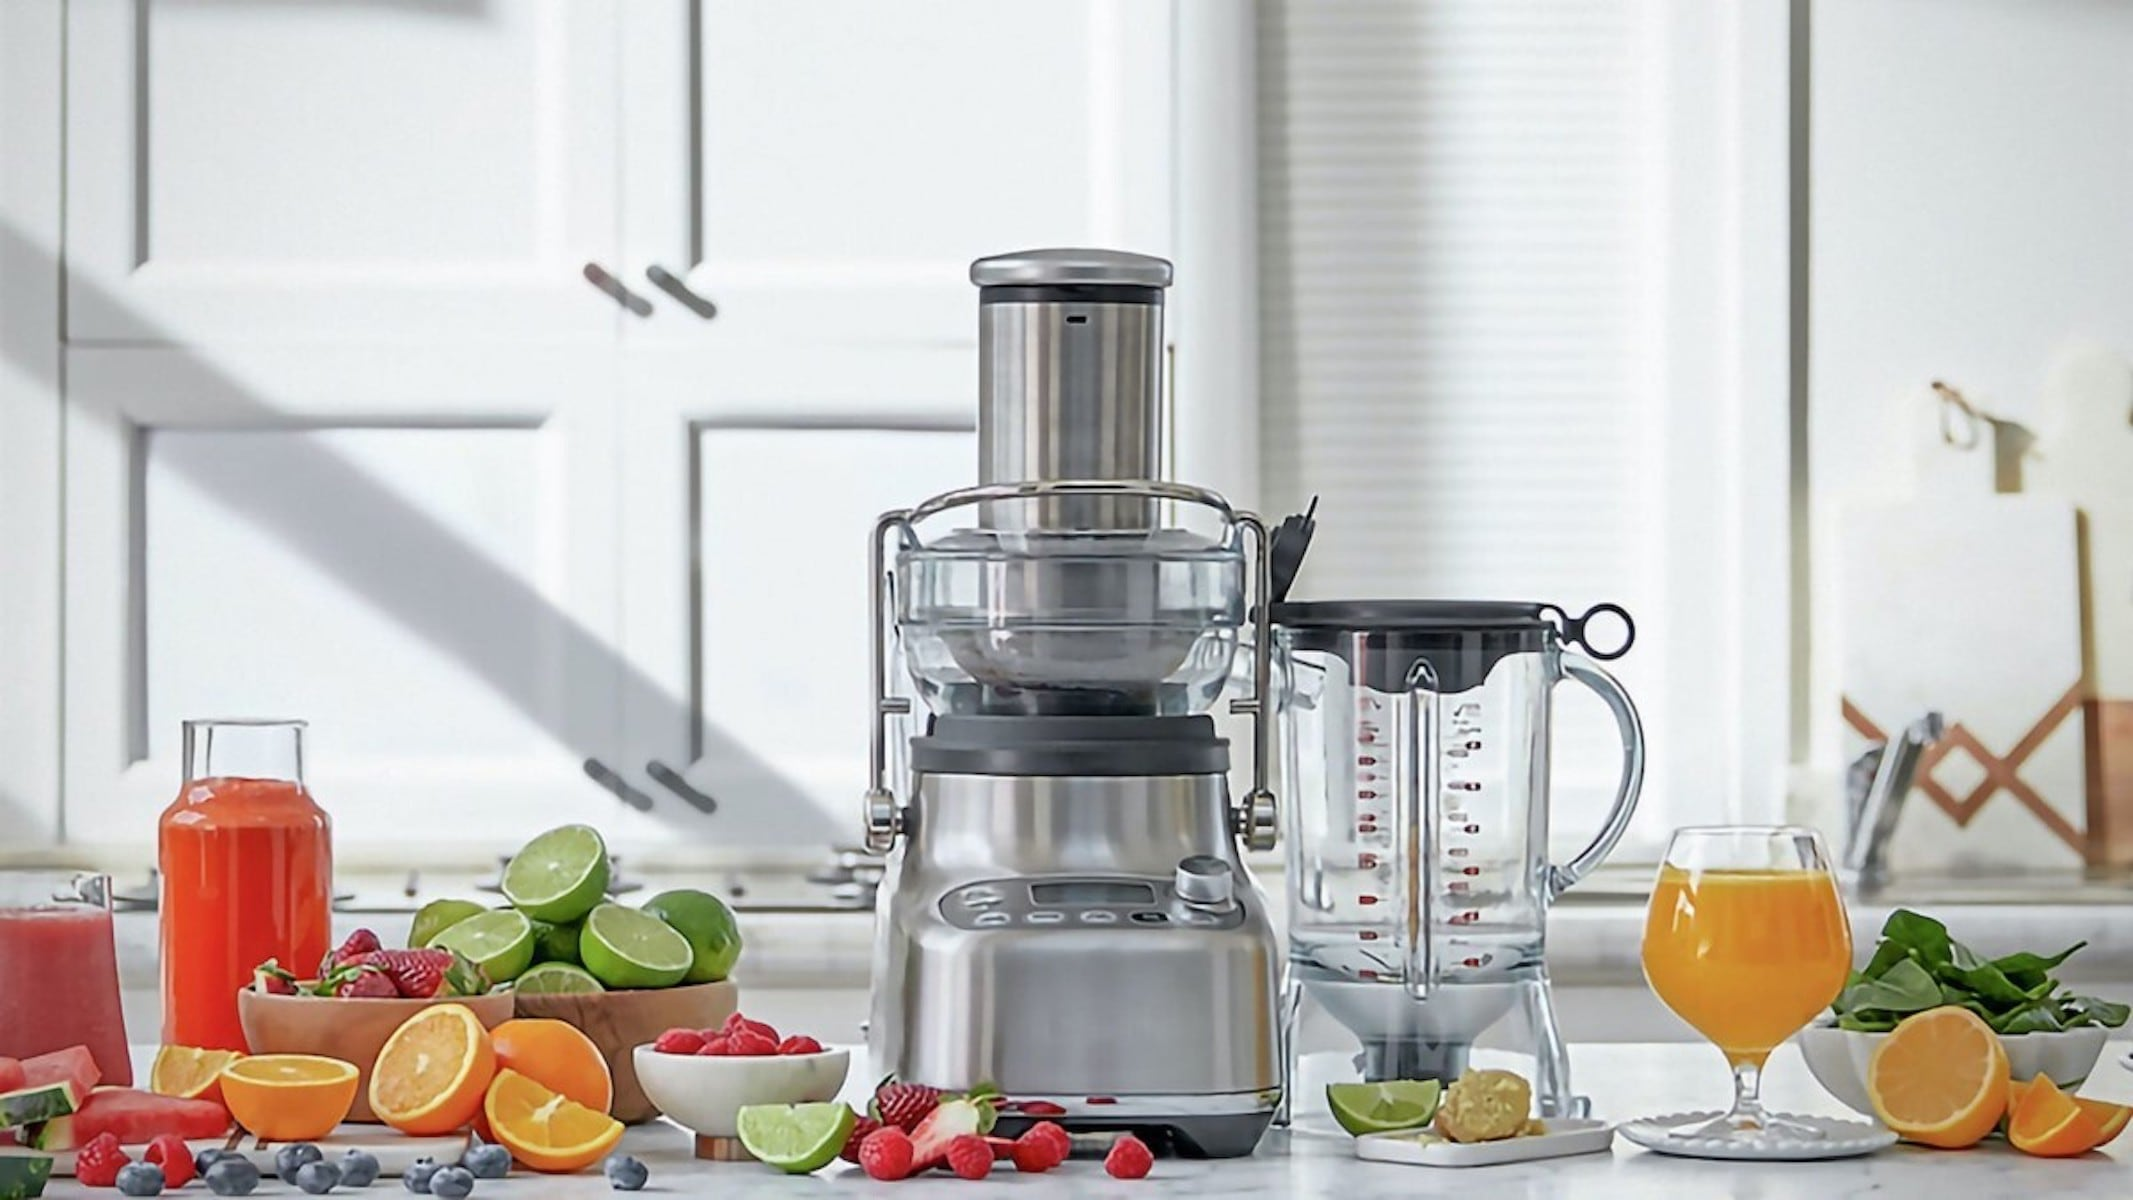 Smoothies or espresso—these breakfast gadgets will make your morning more productive